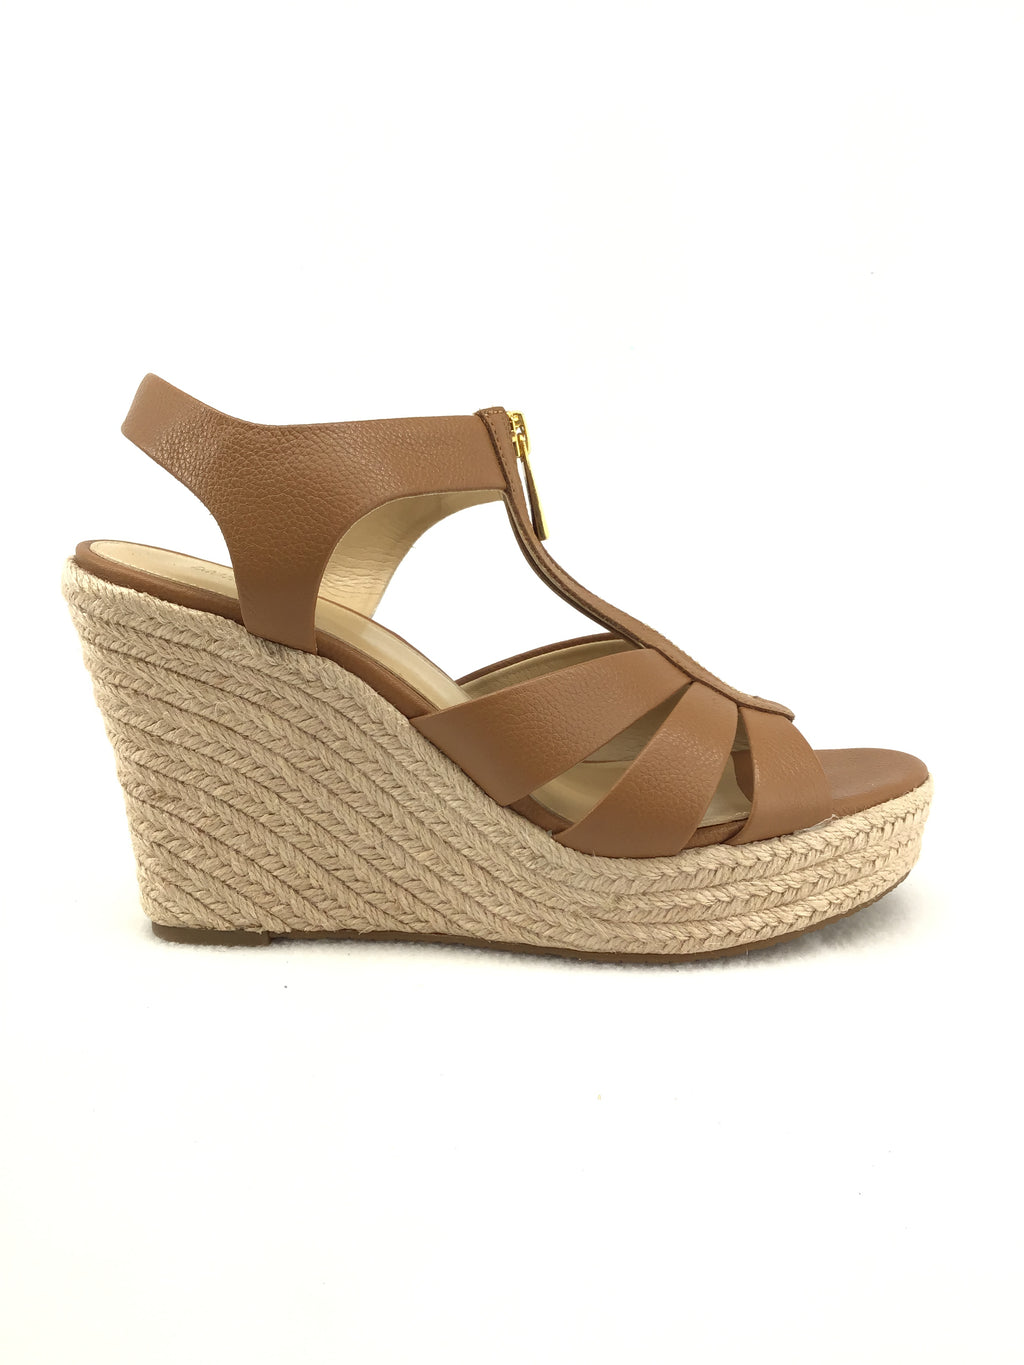 Michael Kors Wedge Sandals Size 8M